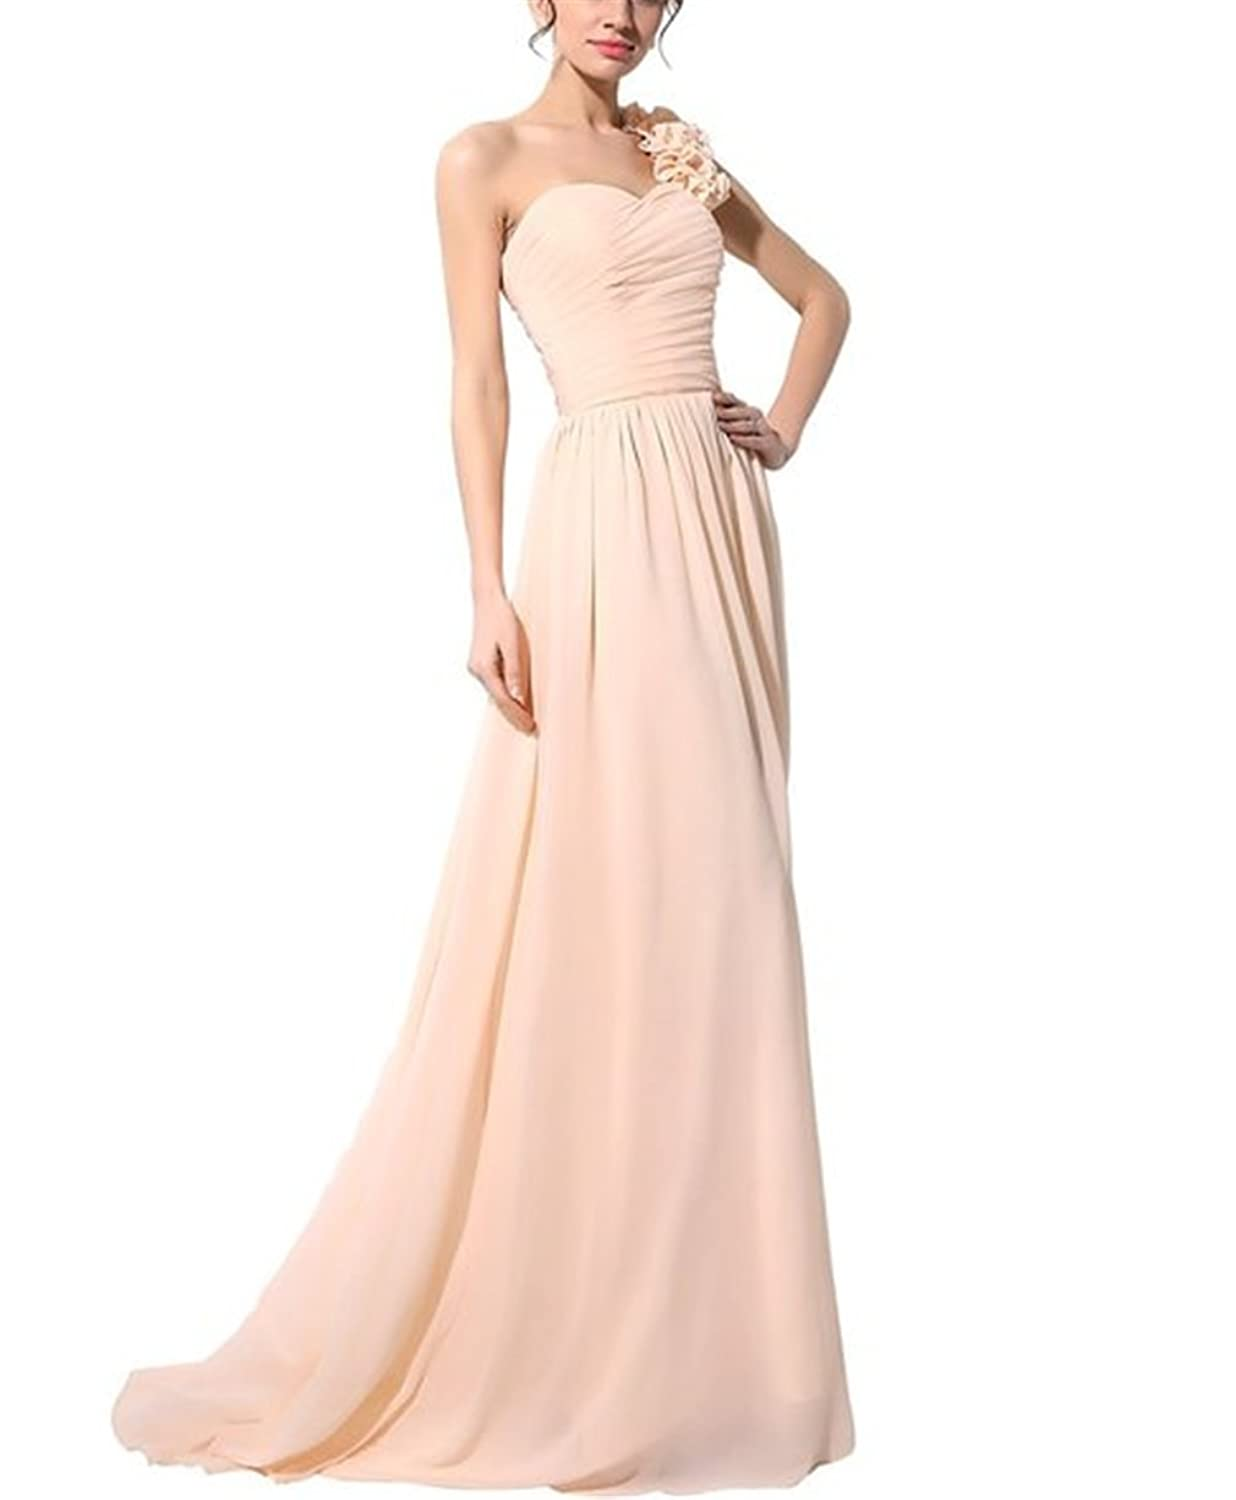 HelloGirls Women's Long One Shoulder Chiffon Bridesmaid Prom Dresses Beaded Party Gowns